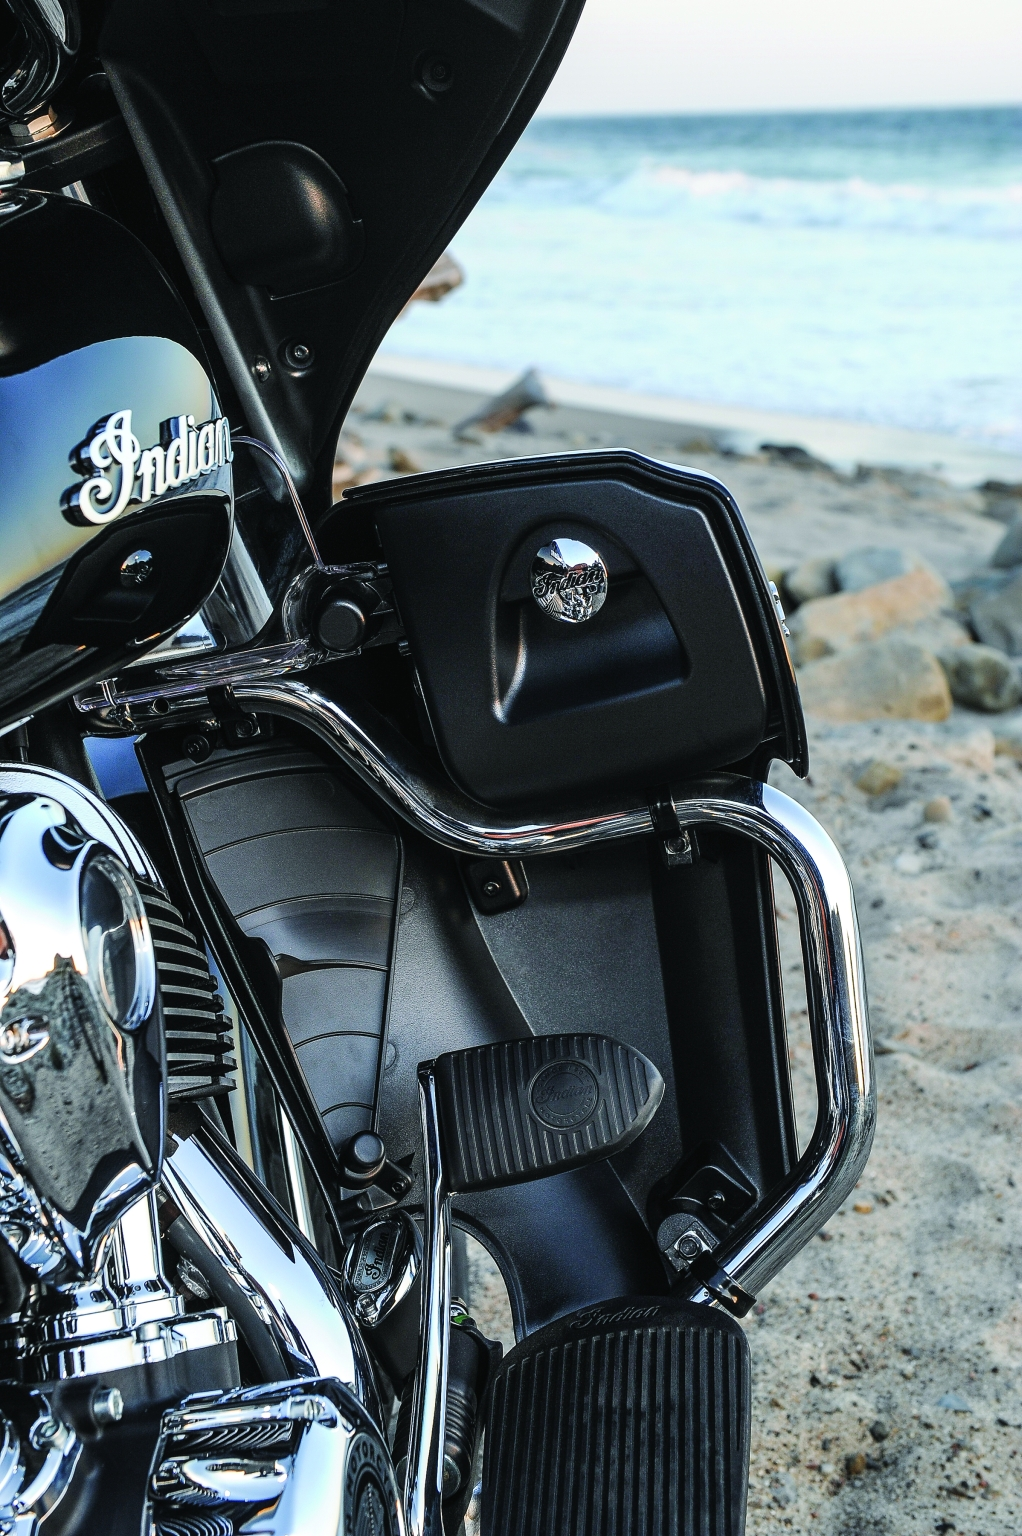 2015 Indian Roadmaster High-Res Picture Xxx - Autoevolution-3394